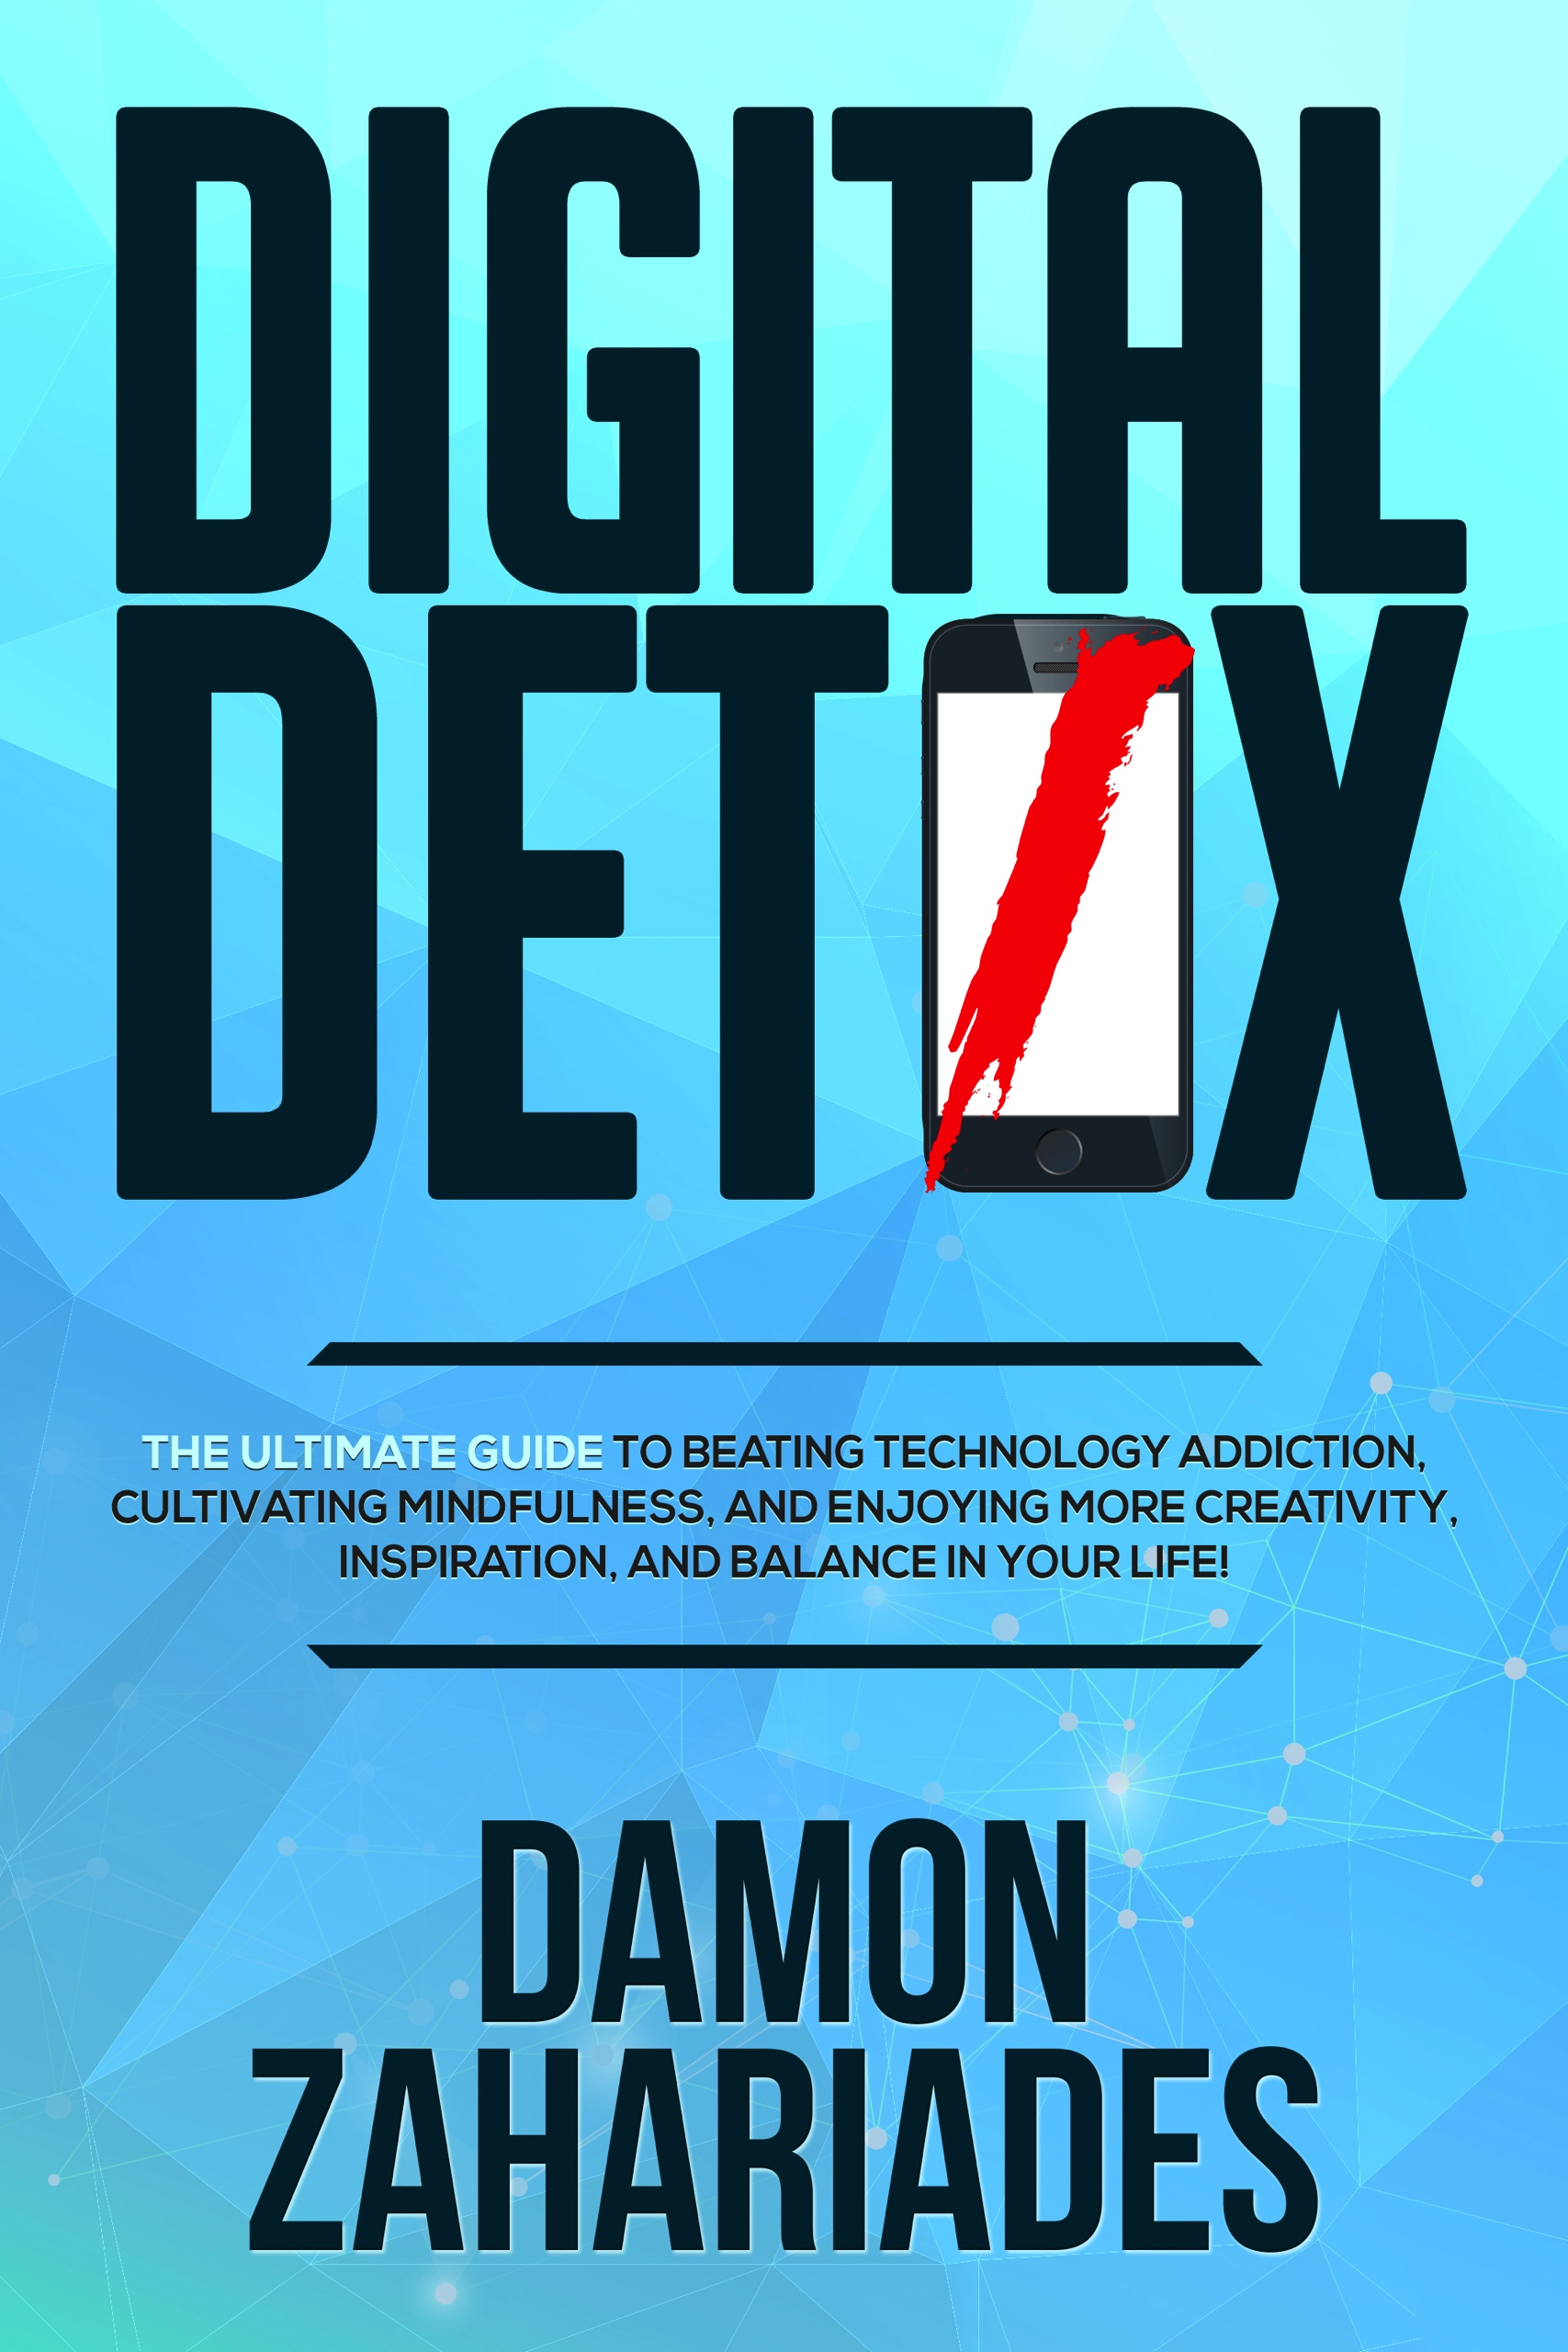 Digital Detox: The Ultimate Guide To Beating Technology Addiction, Cultivating Mindfulness, and Enjoying More Creativity, Inspiration, And Balance In Your Life!